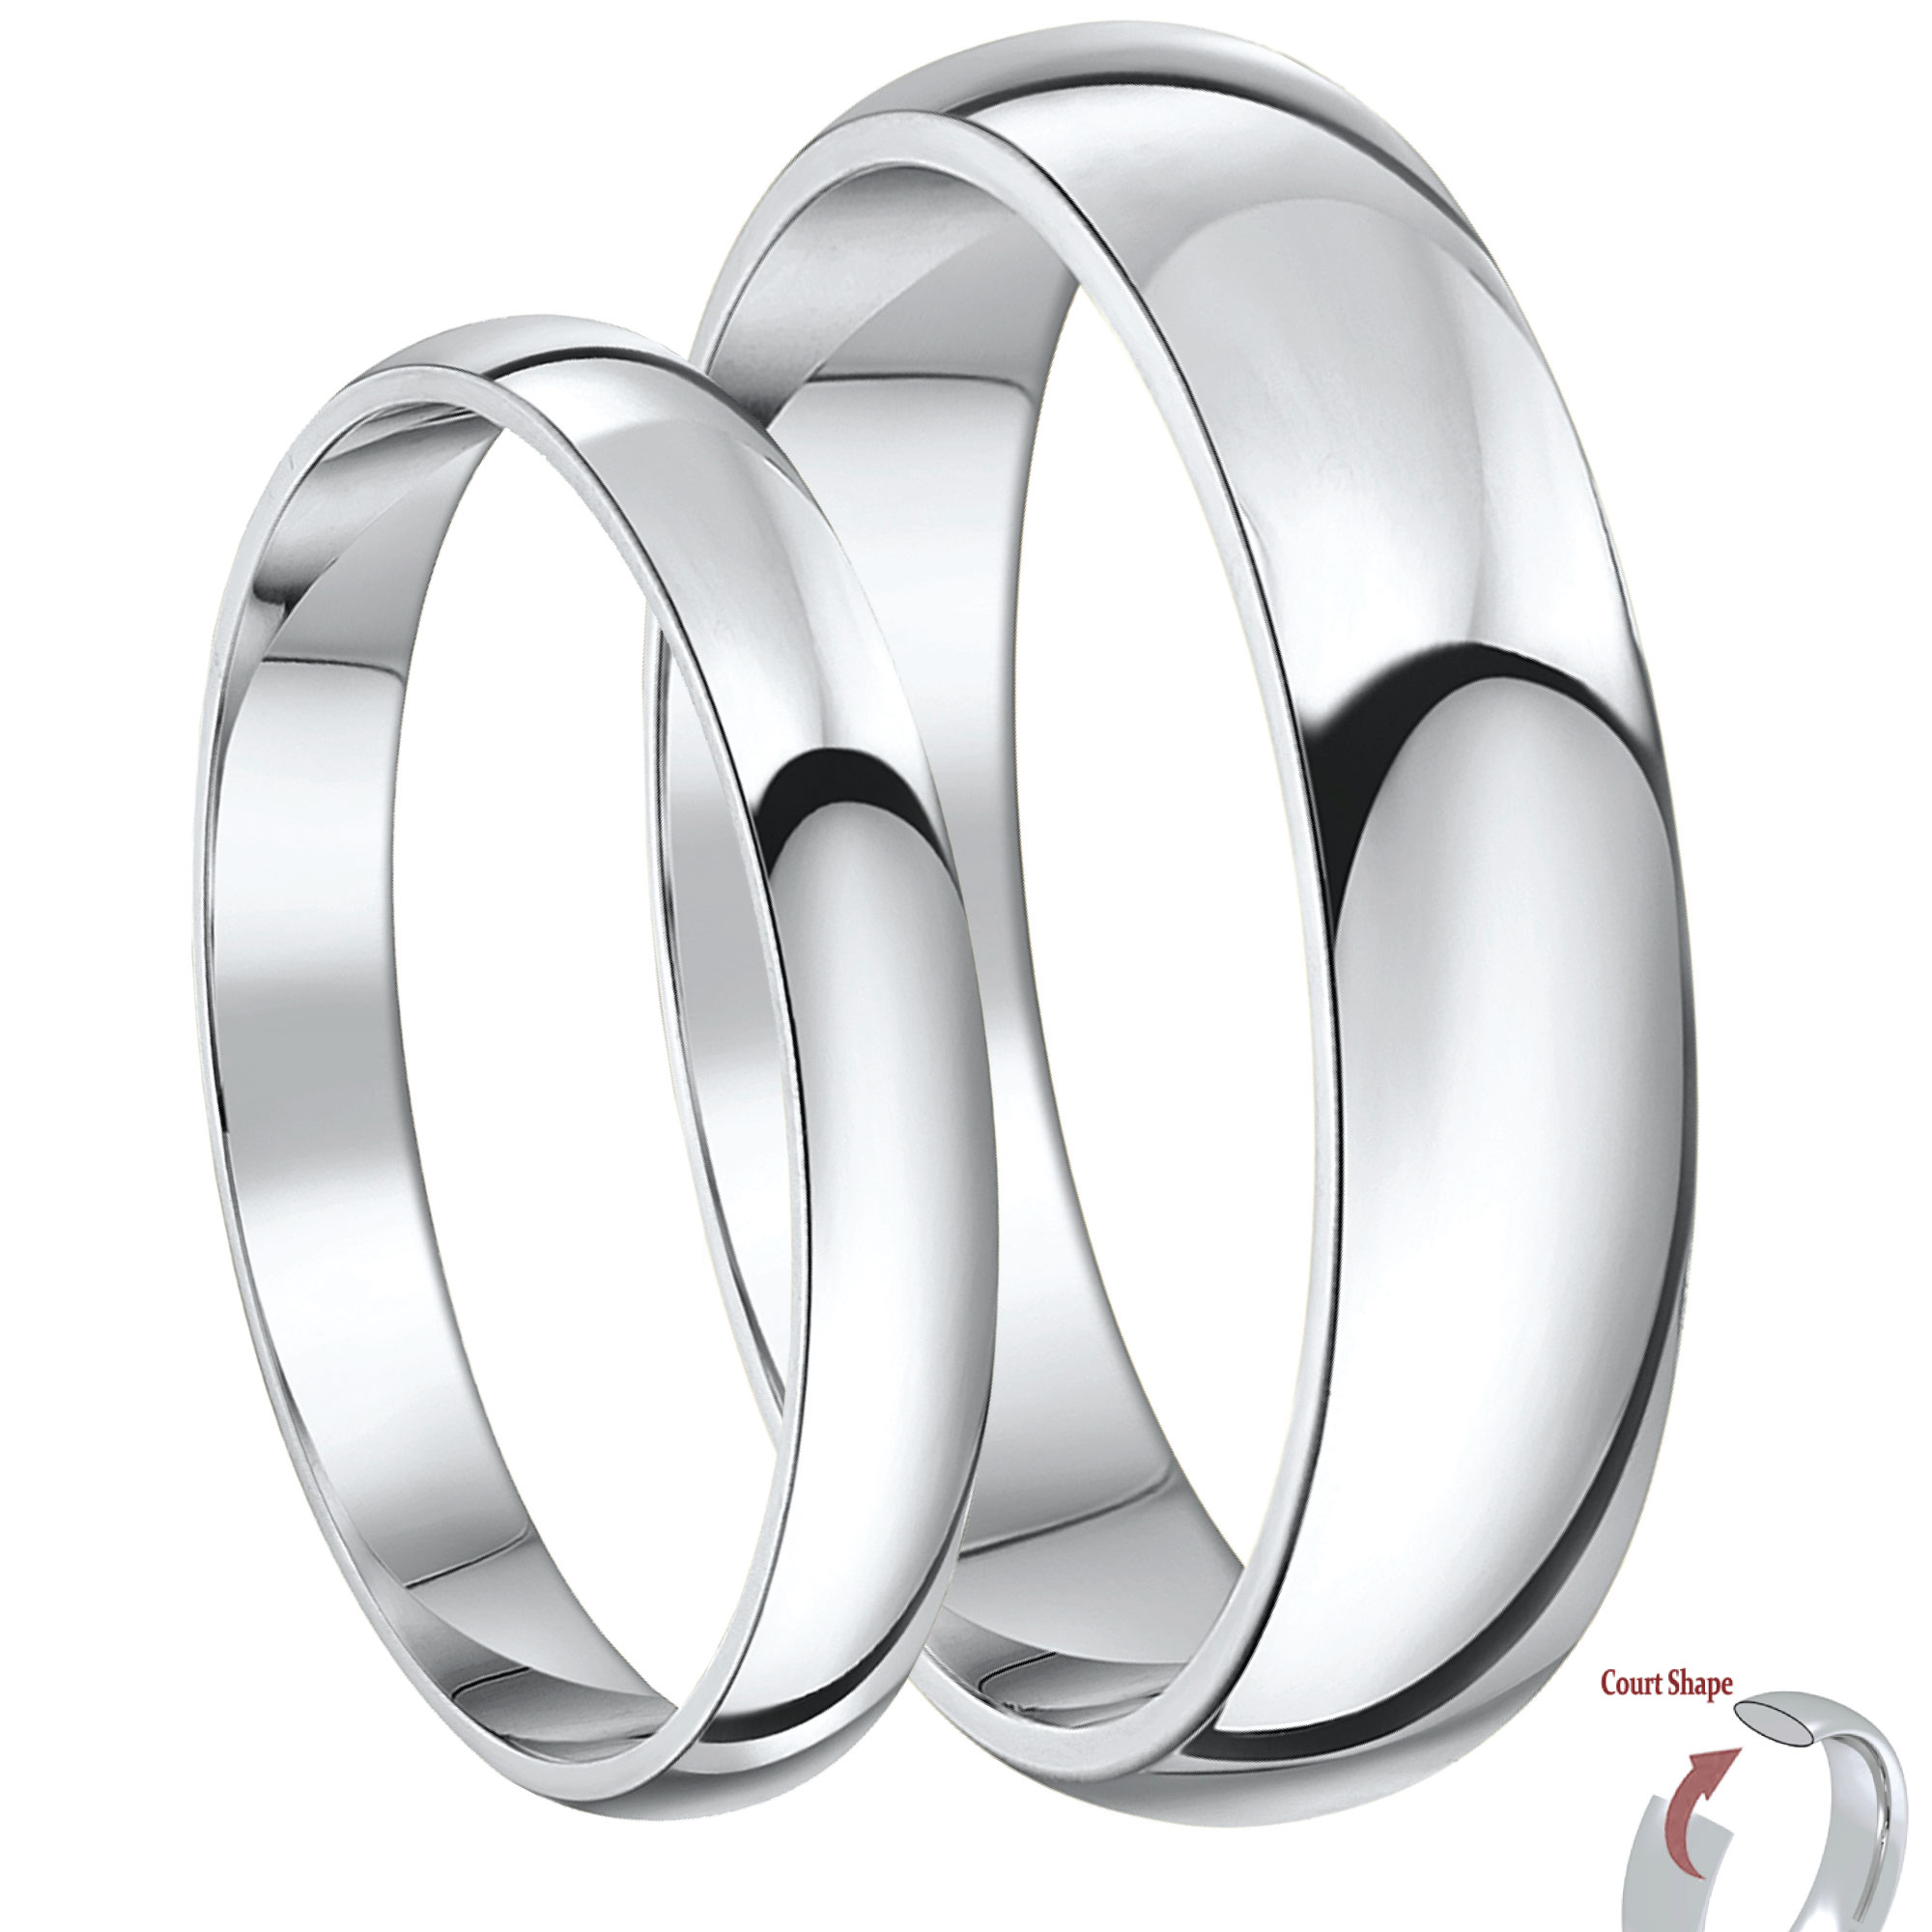 Cobalt Wedding Rings Matching His & Hers Couples Court Polished Bands 3&5mm